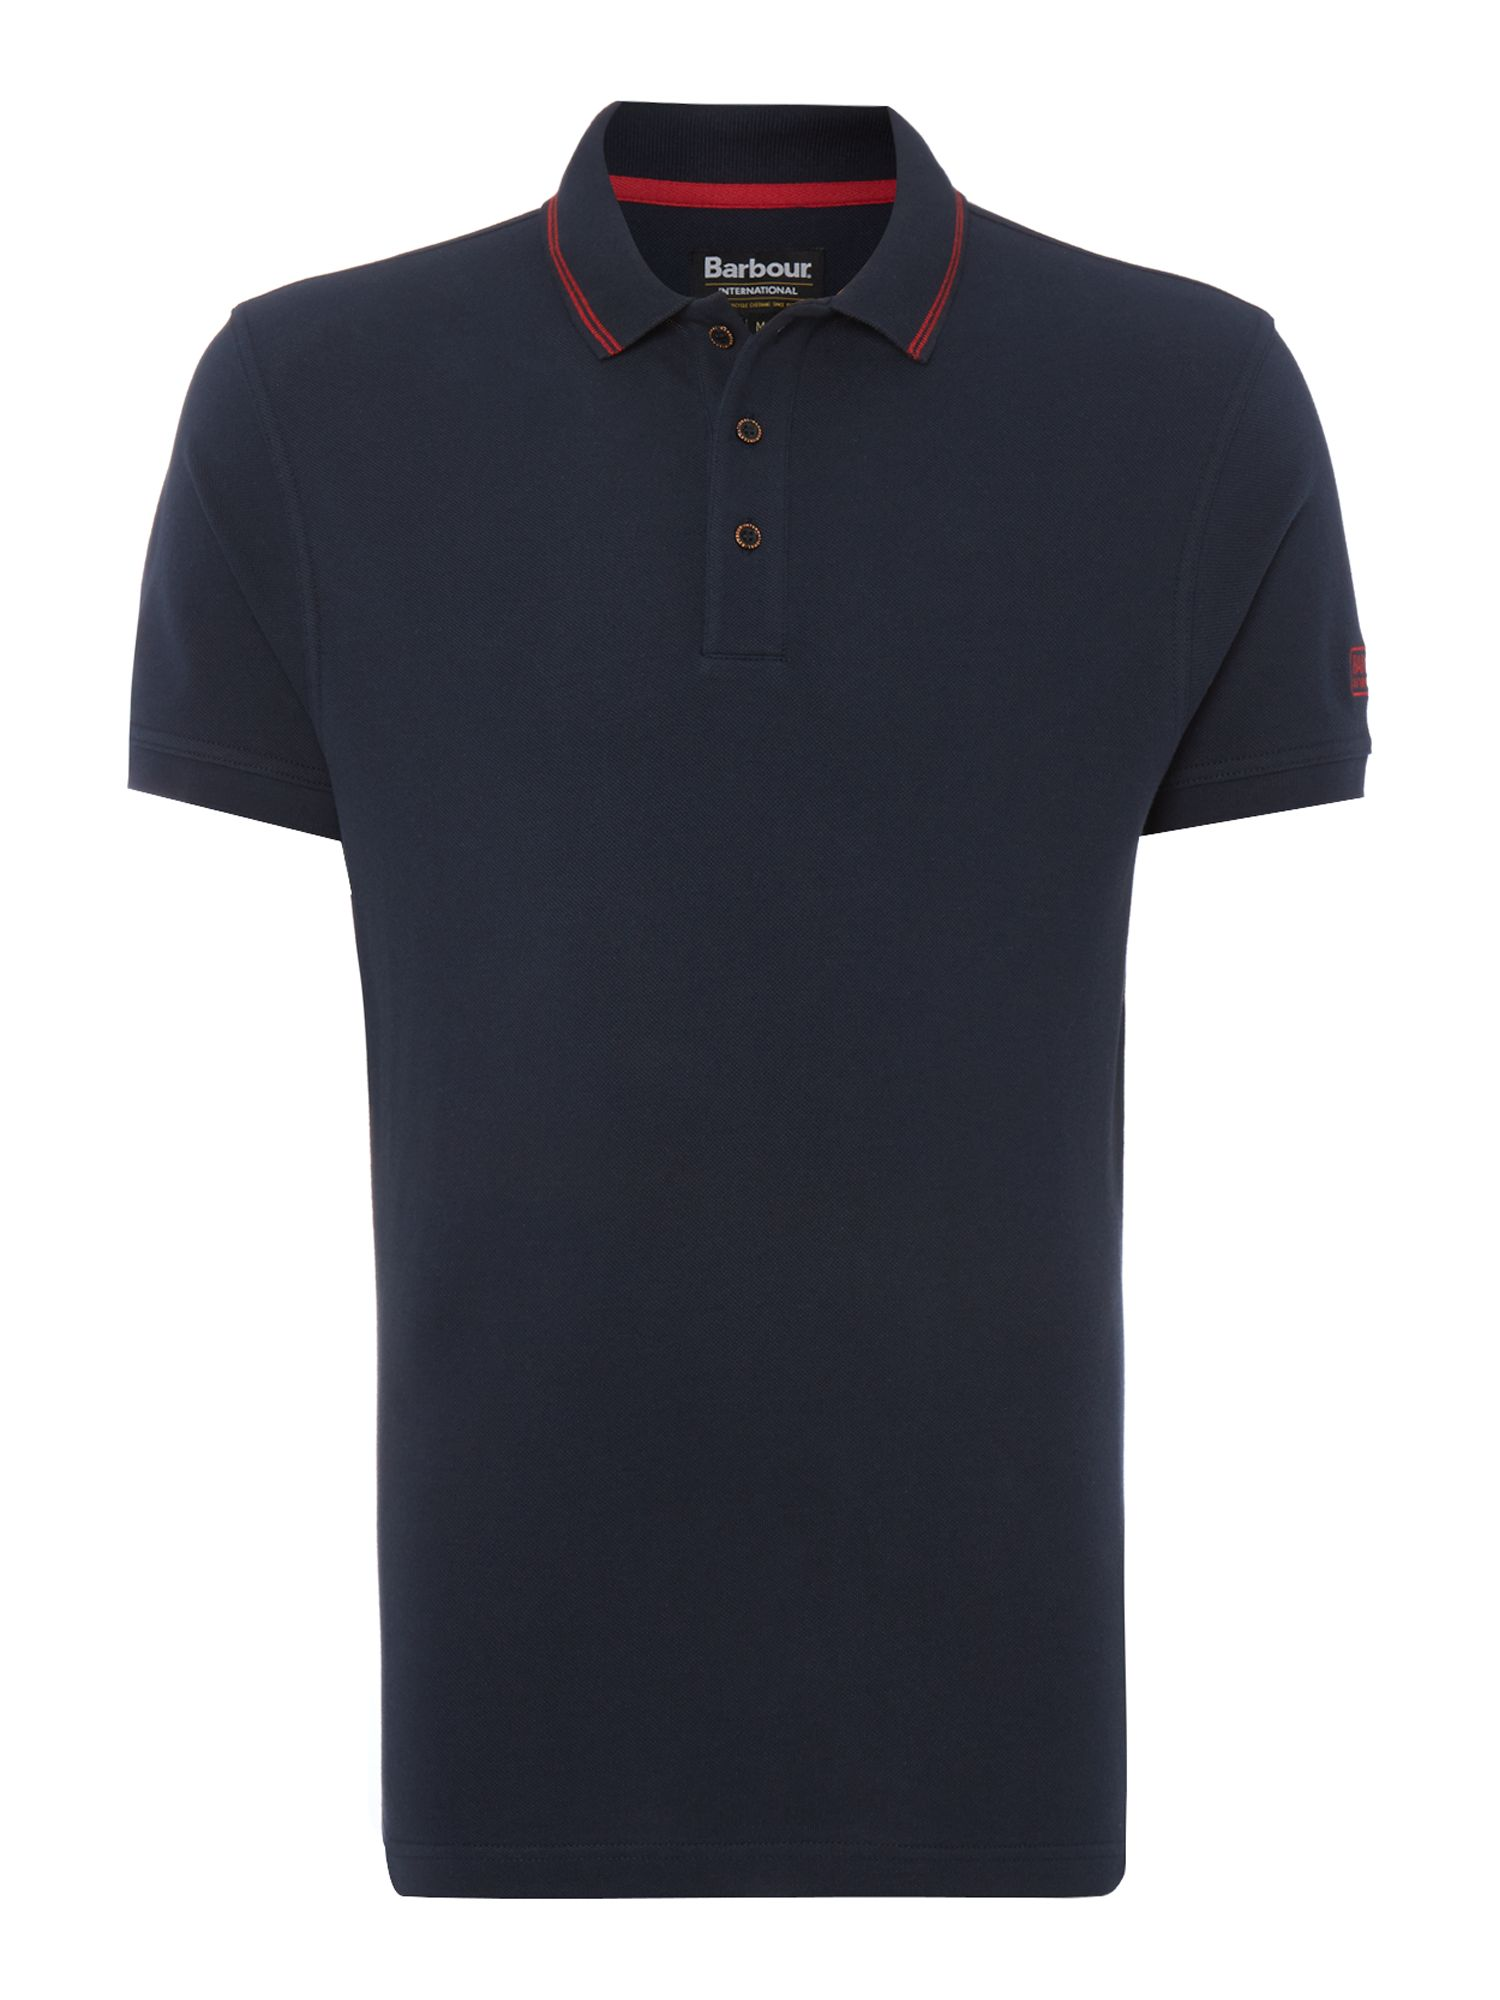 Men's Barbour International Polo Shirt, Blue